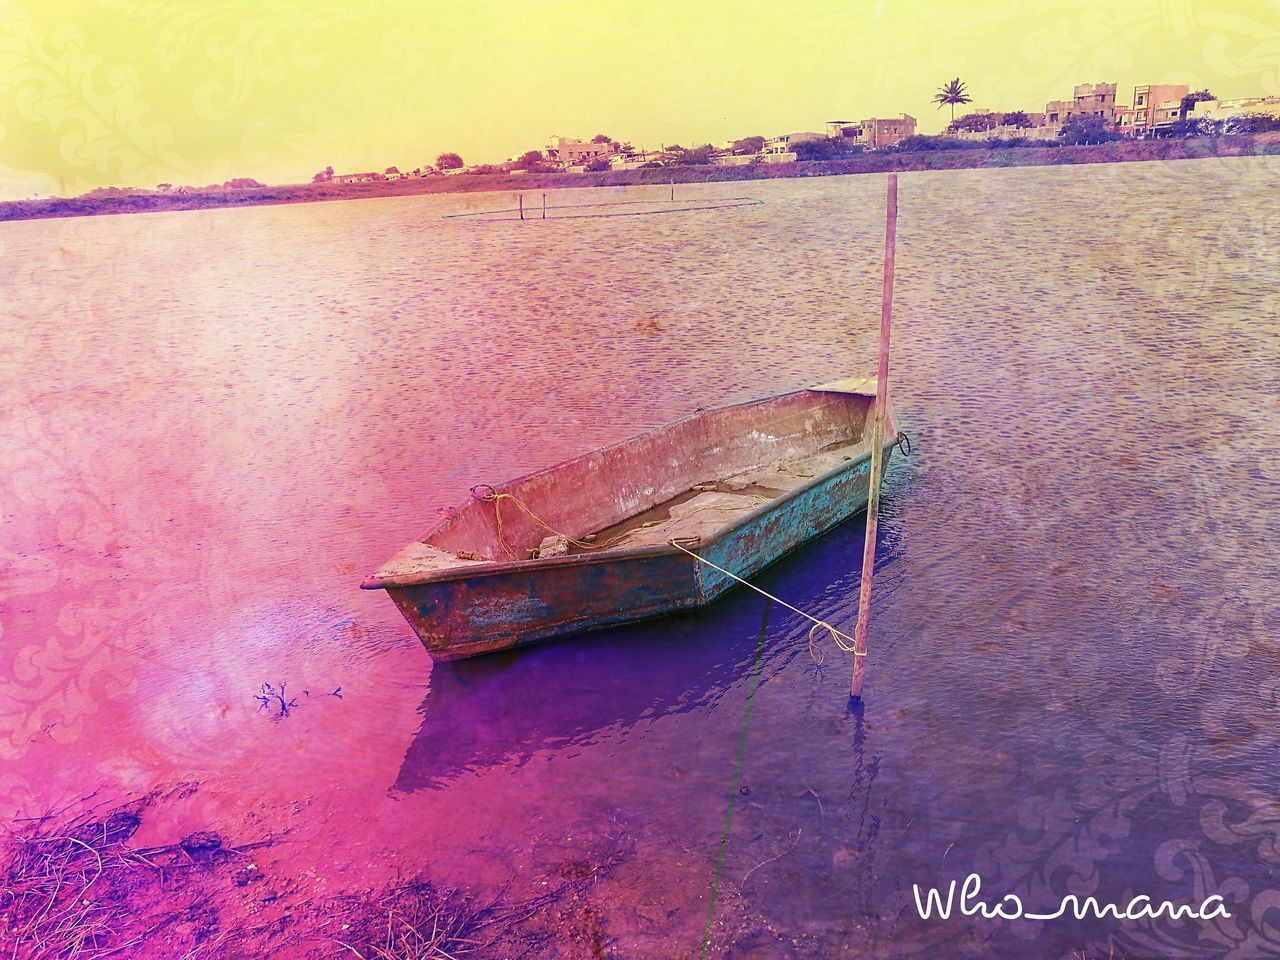 Abandoned fishing boat India Life Love ♥ Filters Are Fun Art Dreaming Original Experiences Layers And Colors Pixlr Blackandwhite Deadbutalive Myselfcoloursplash Scenery Grey Beauty In Nature Clouds